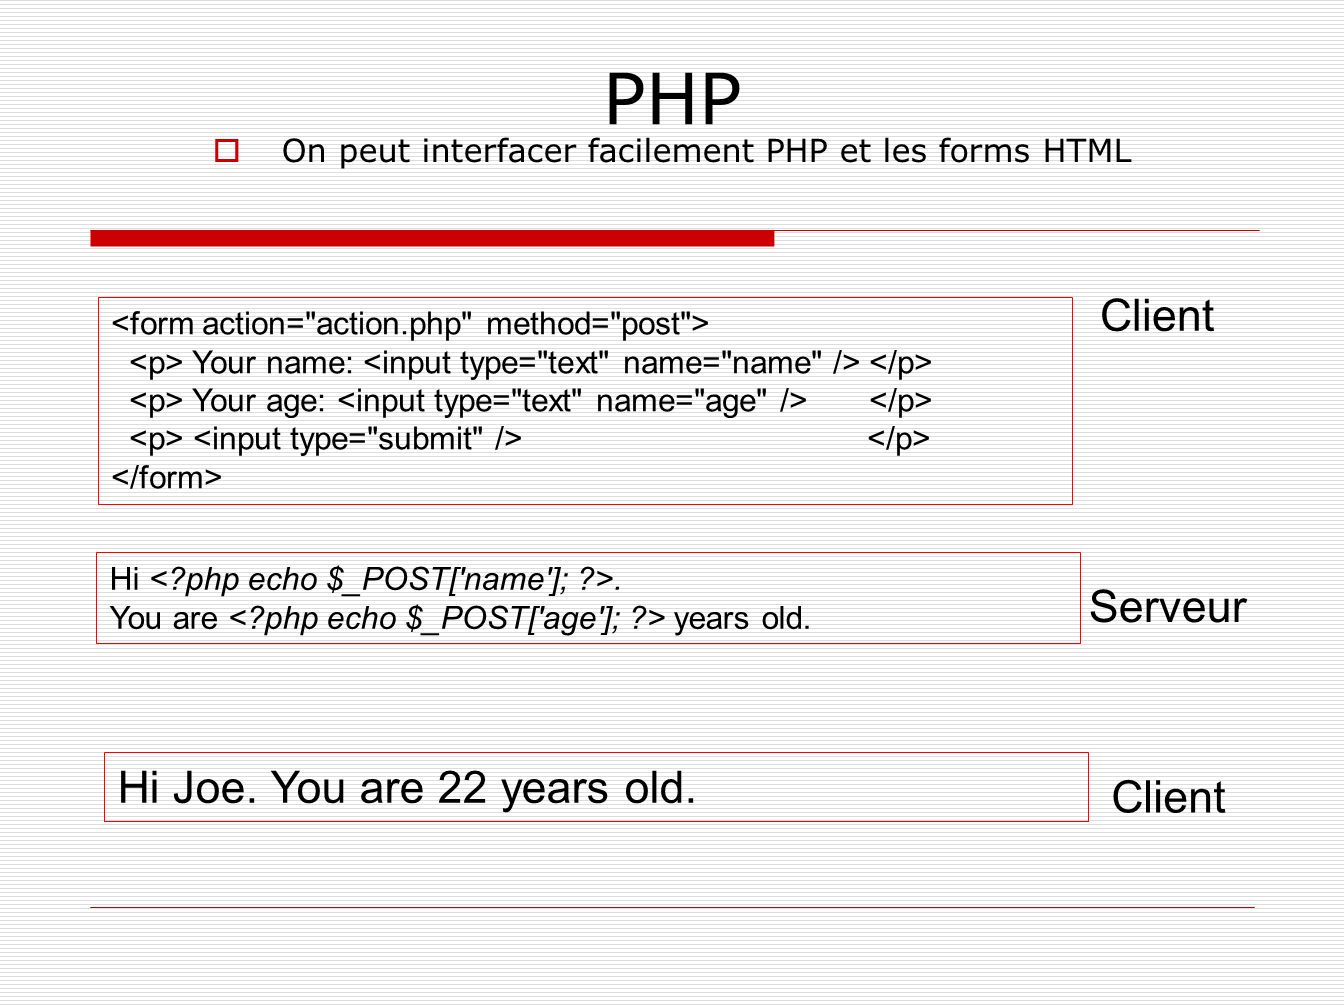 On peut interfacer facilement PHP et les forms HTML